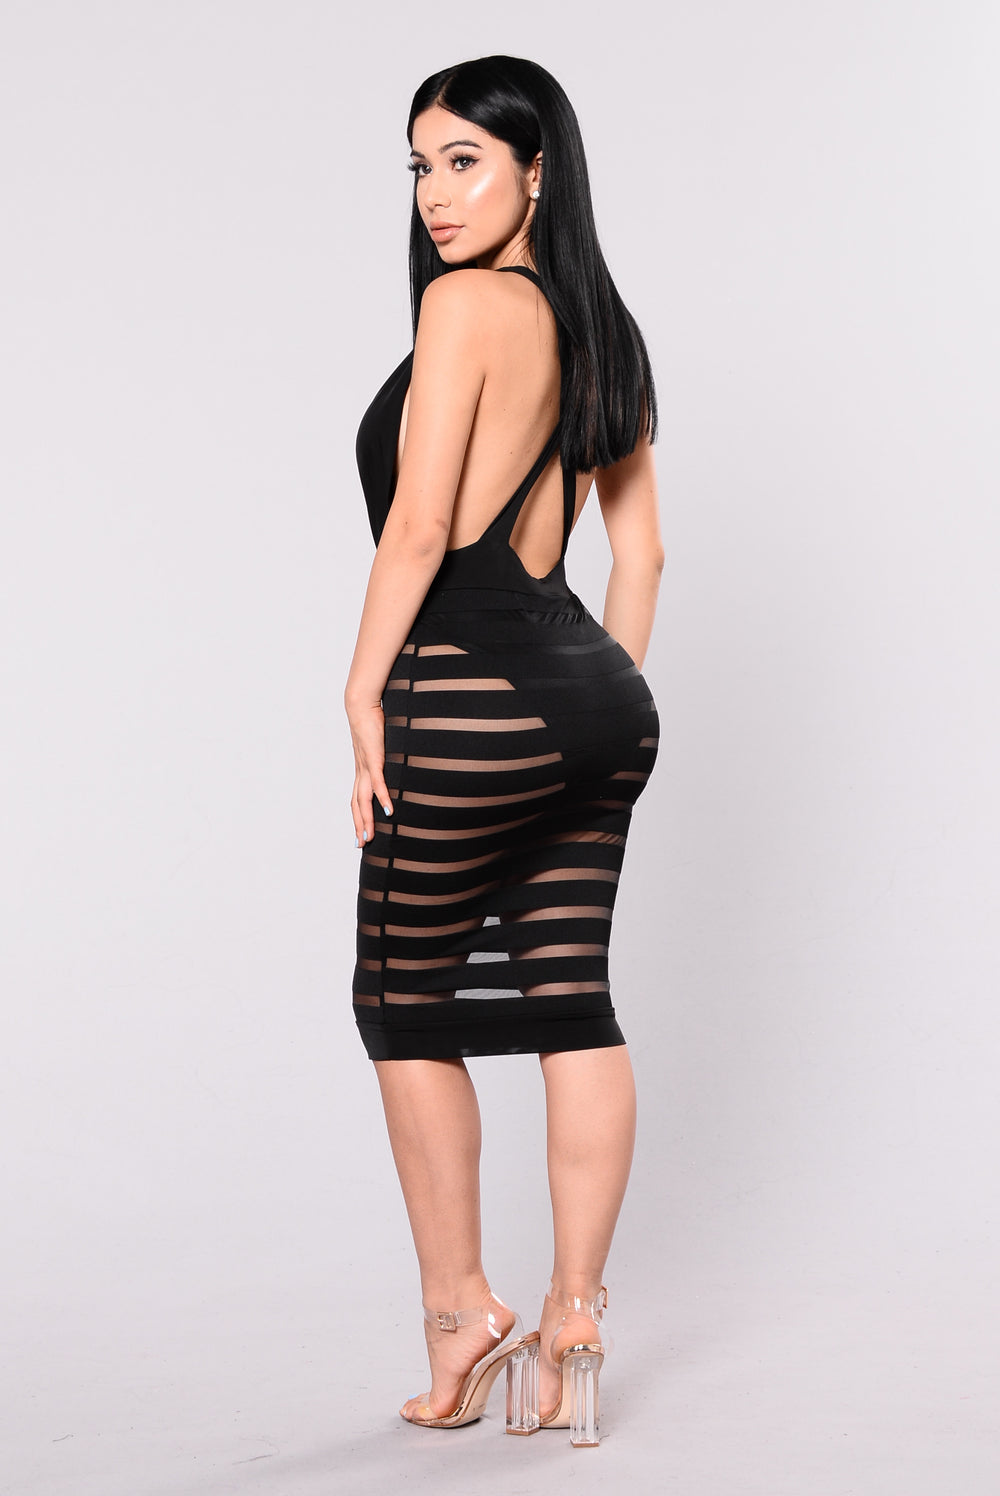 Contigo Dress - Black